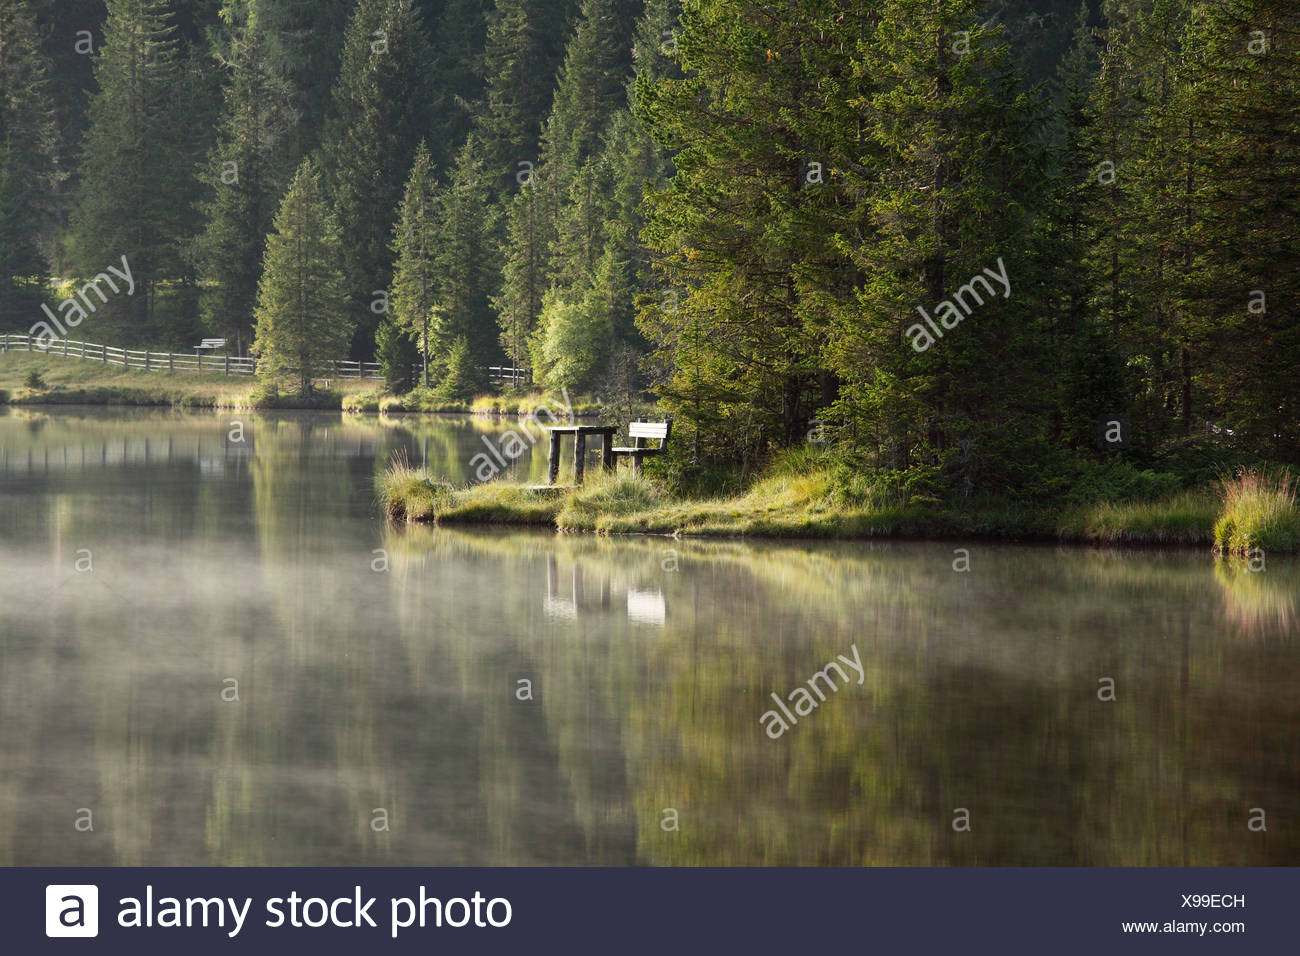 Morning mood at Lake Prebersee, Lungau, Salzburg state, Salzburg, Austria, Europe Stock Photo